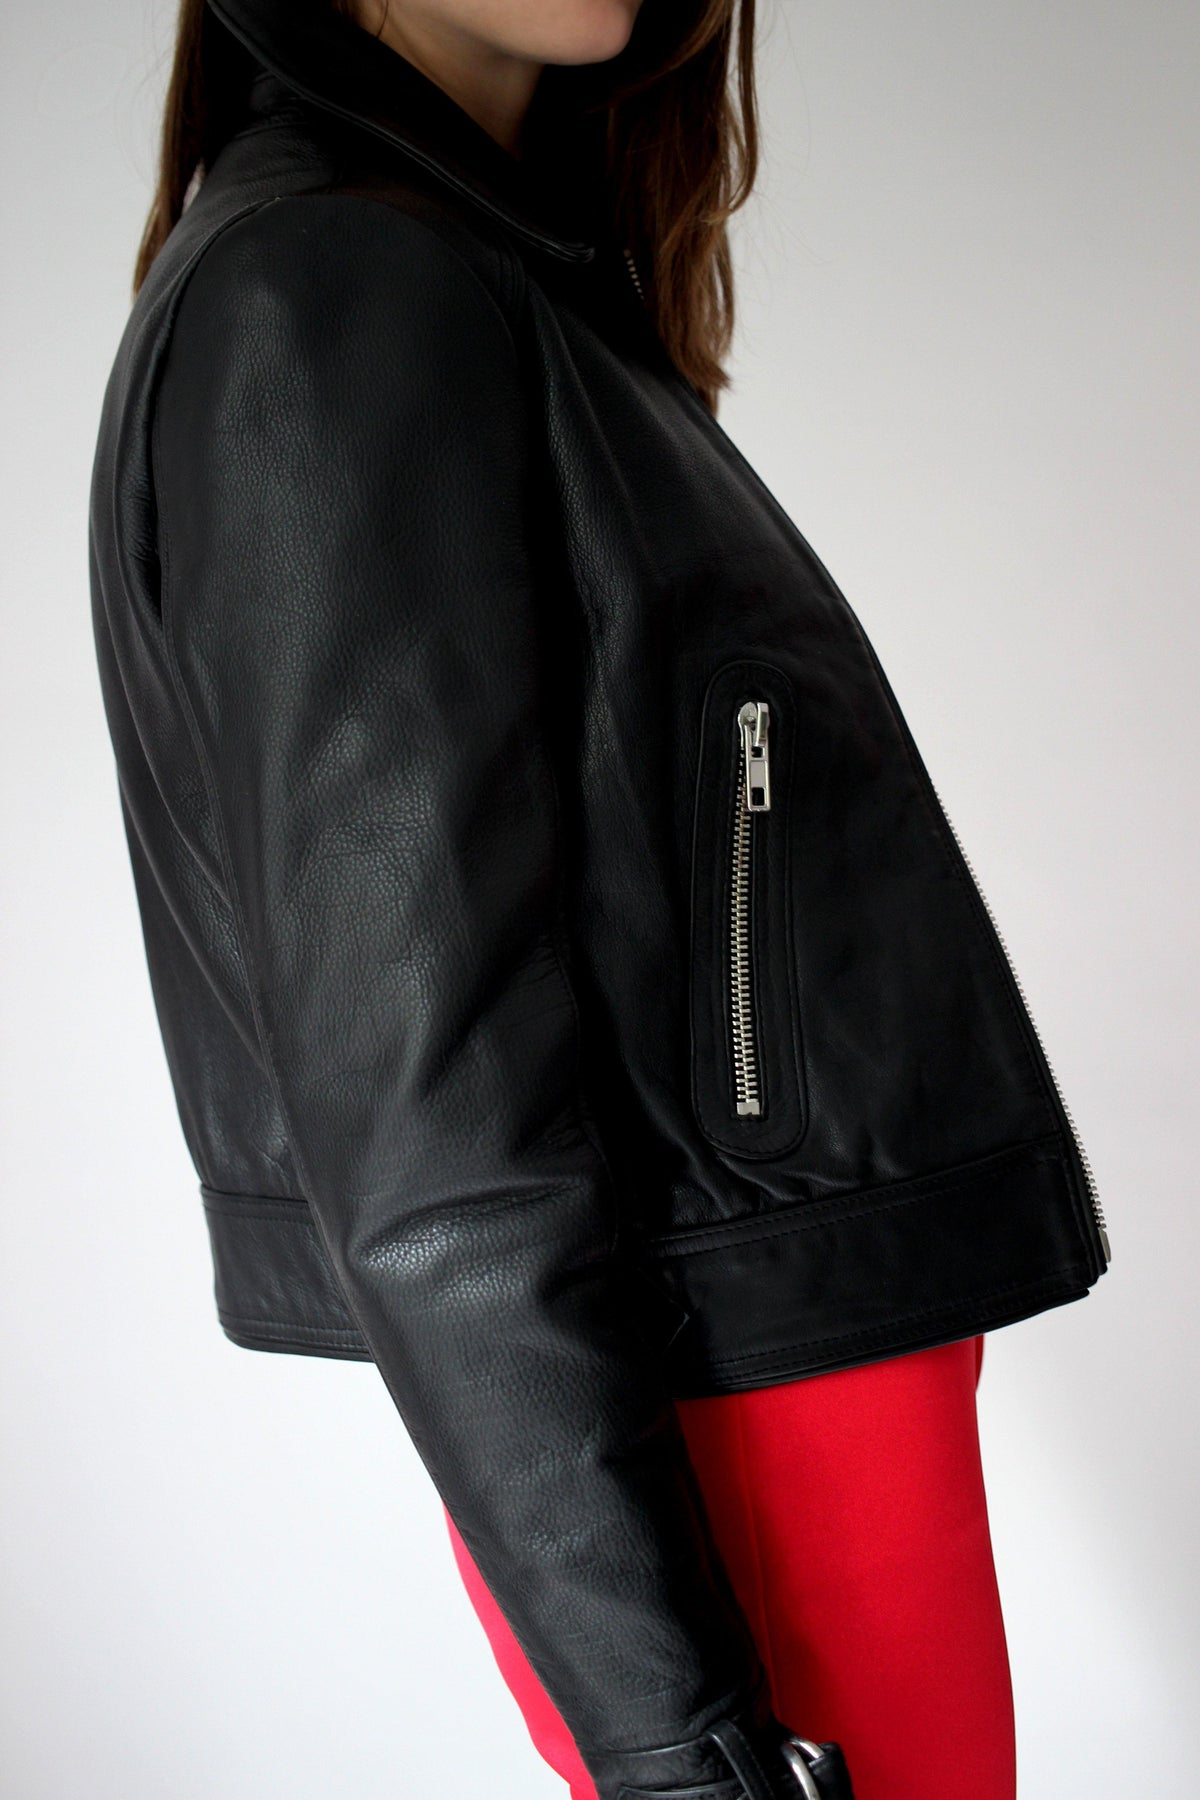 MAJE Leather Jacket - The Good Store Berlin